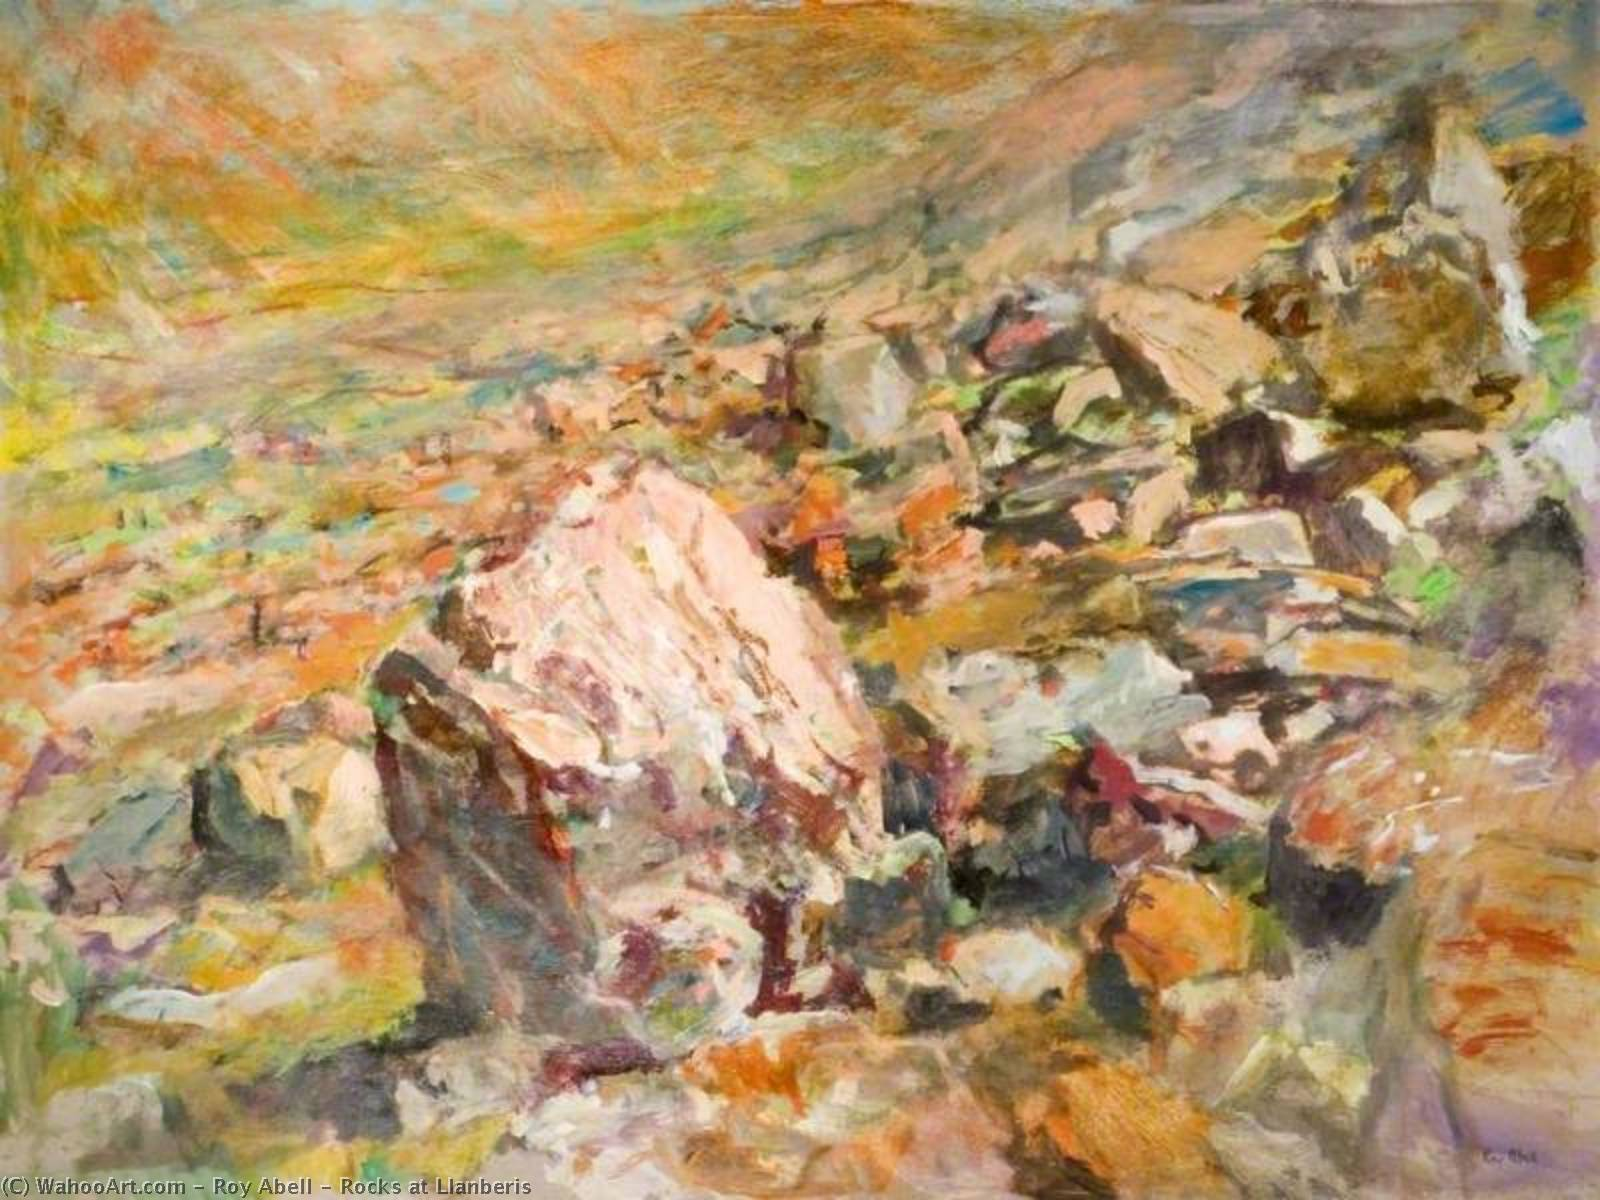 Rocks at Llanberis, 1996 by Roy Abell | Oil Painting | WahooArt.com